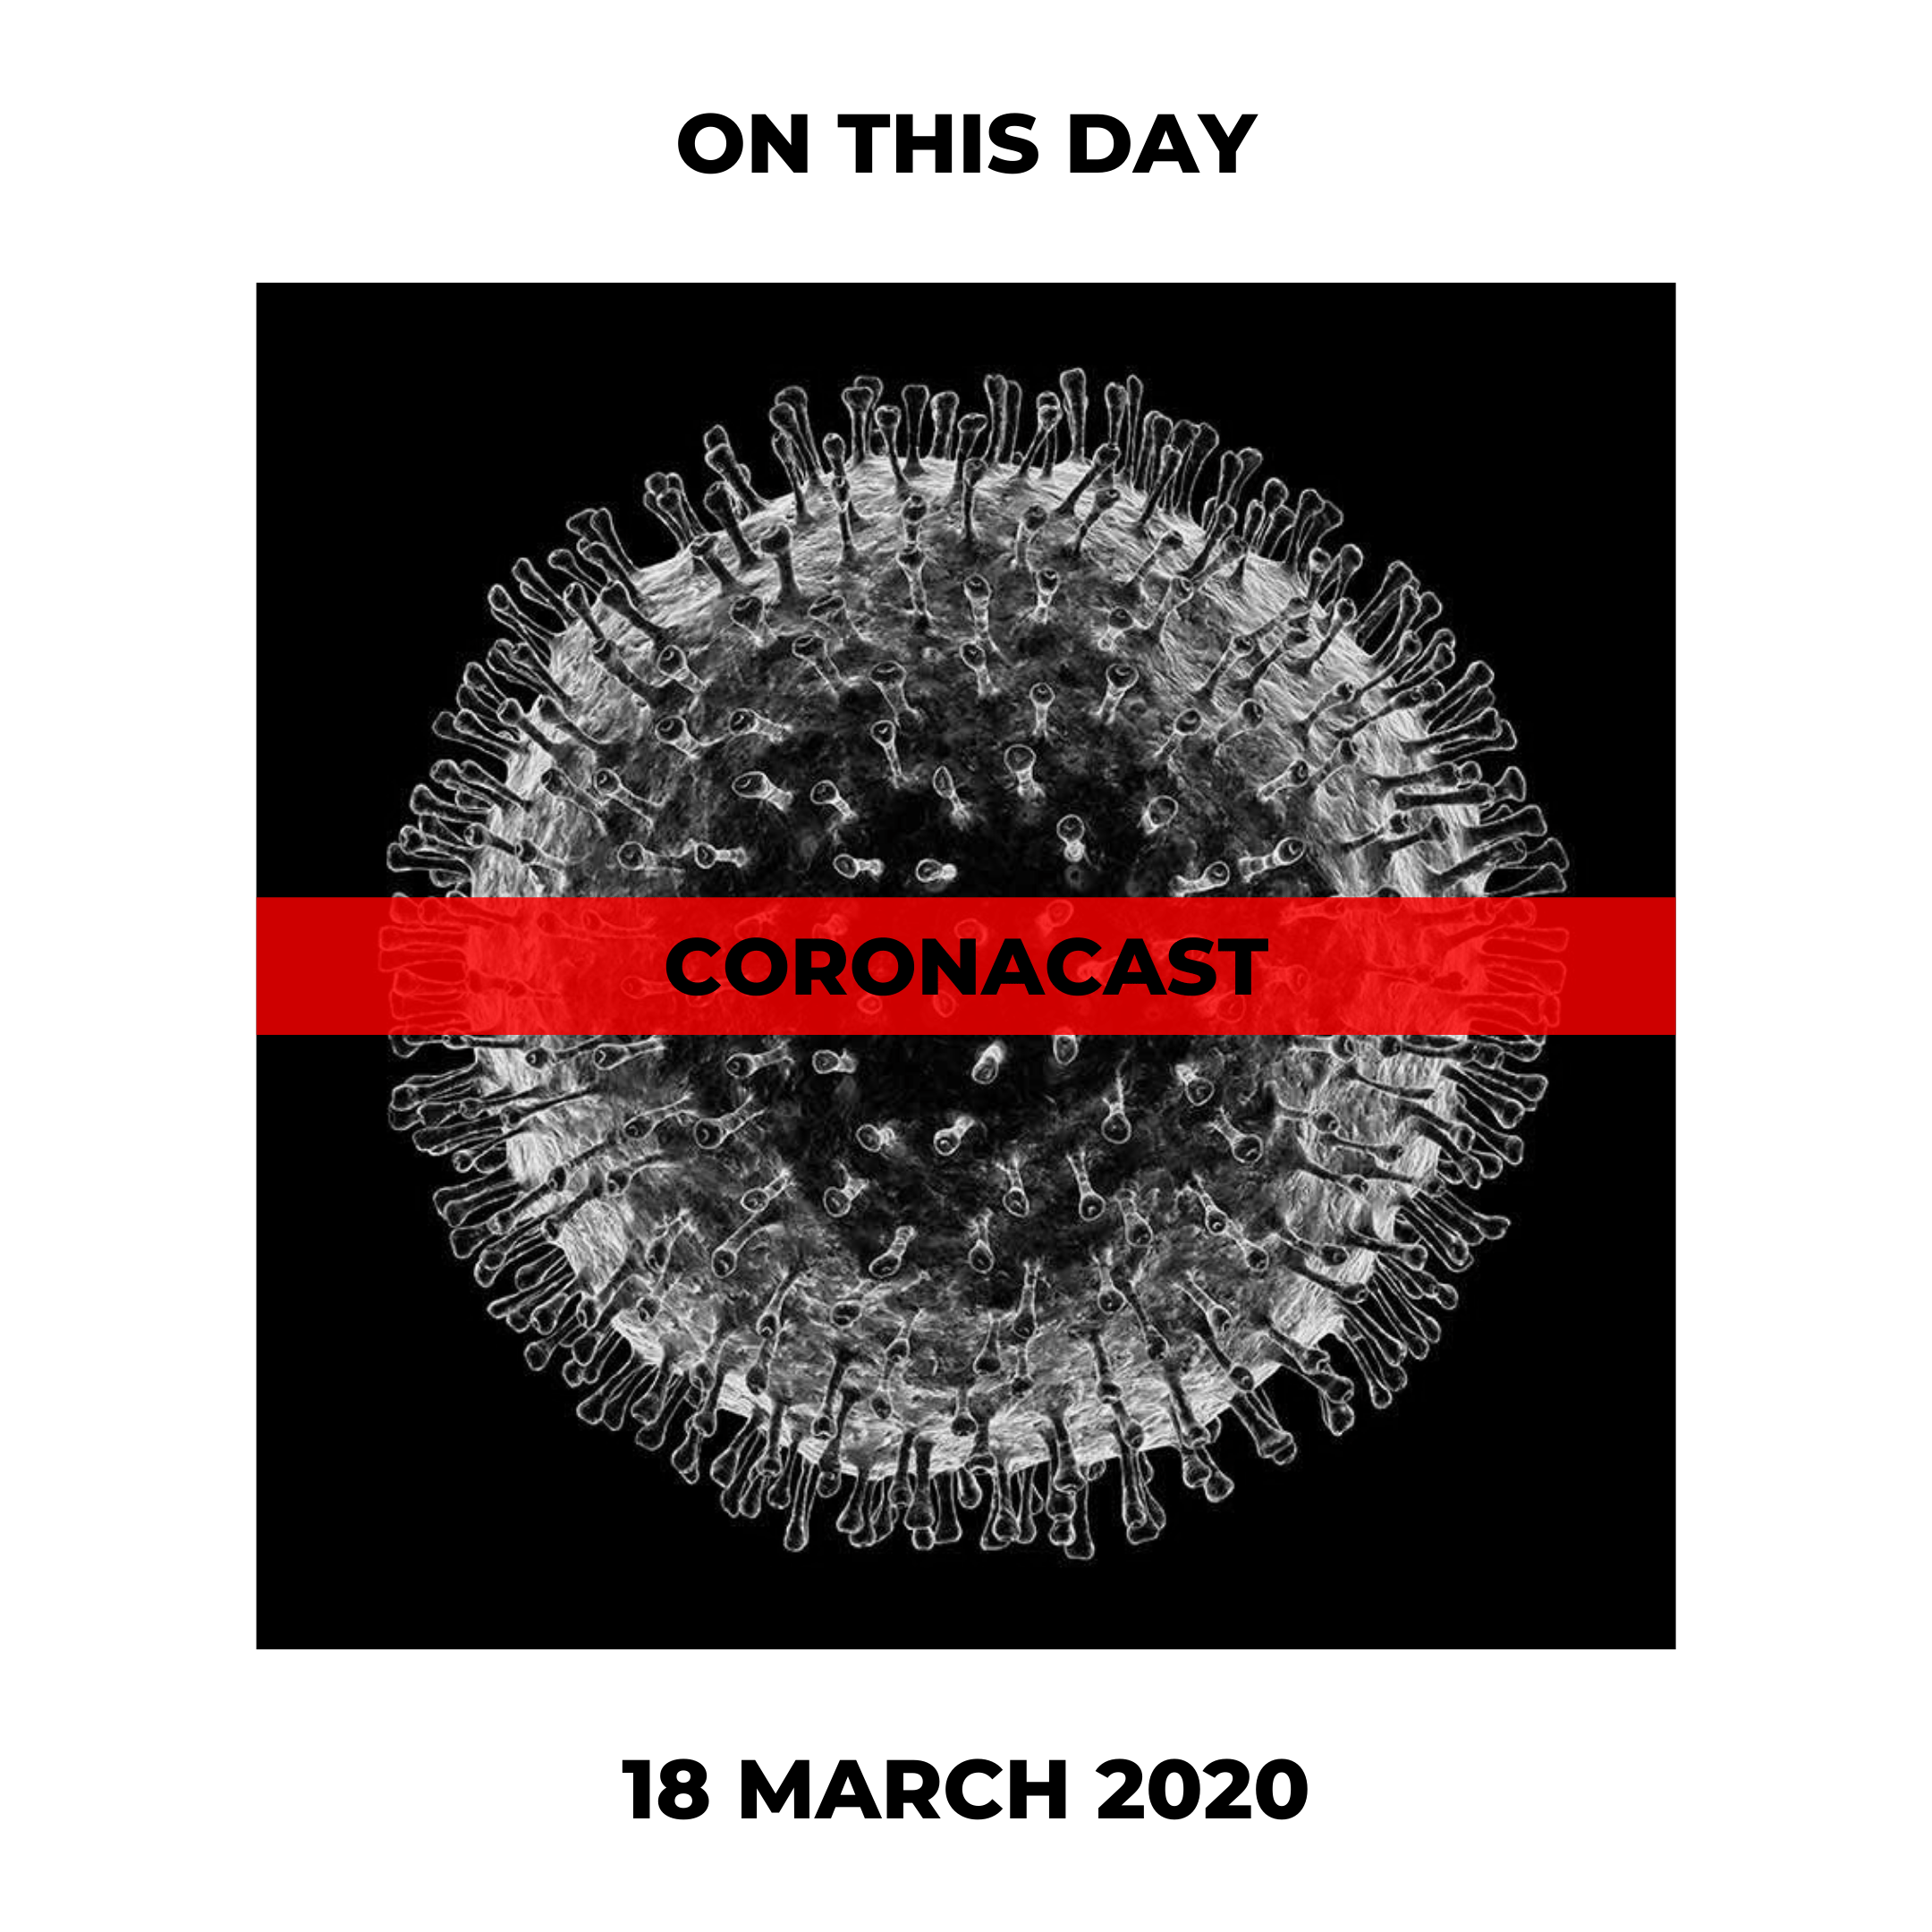 On this day : Coronacast [18 March 2020]